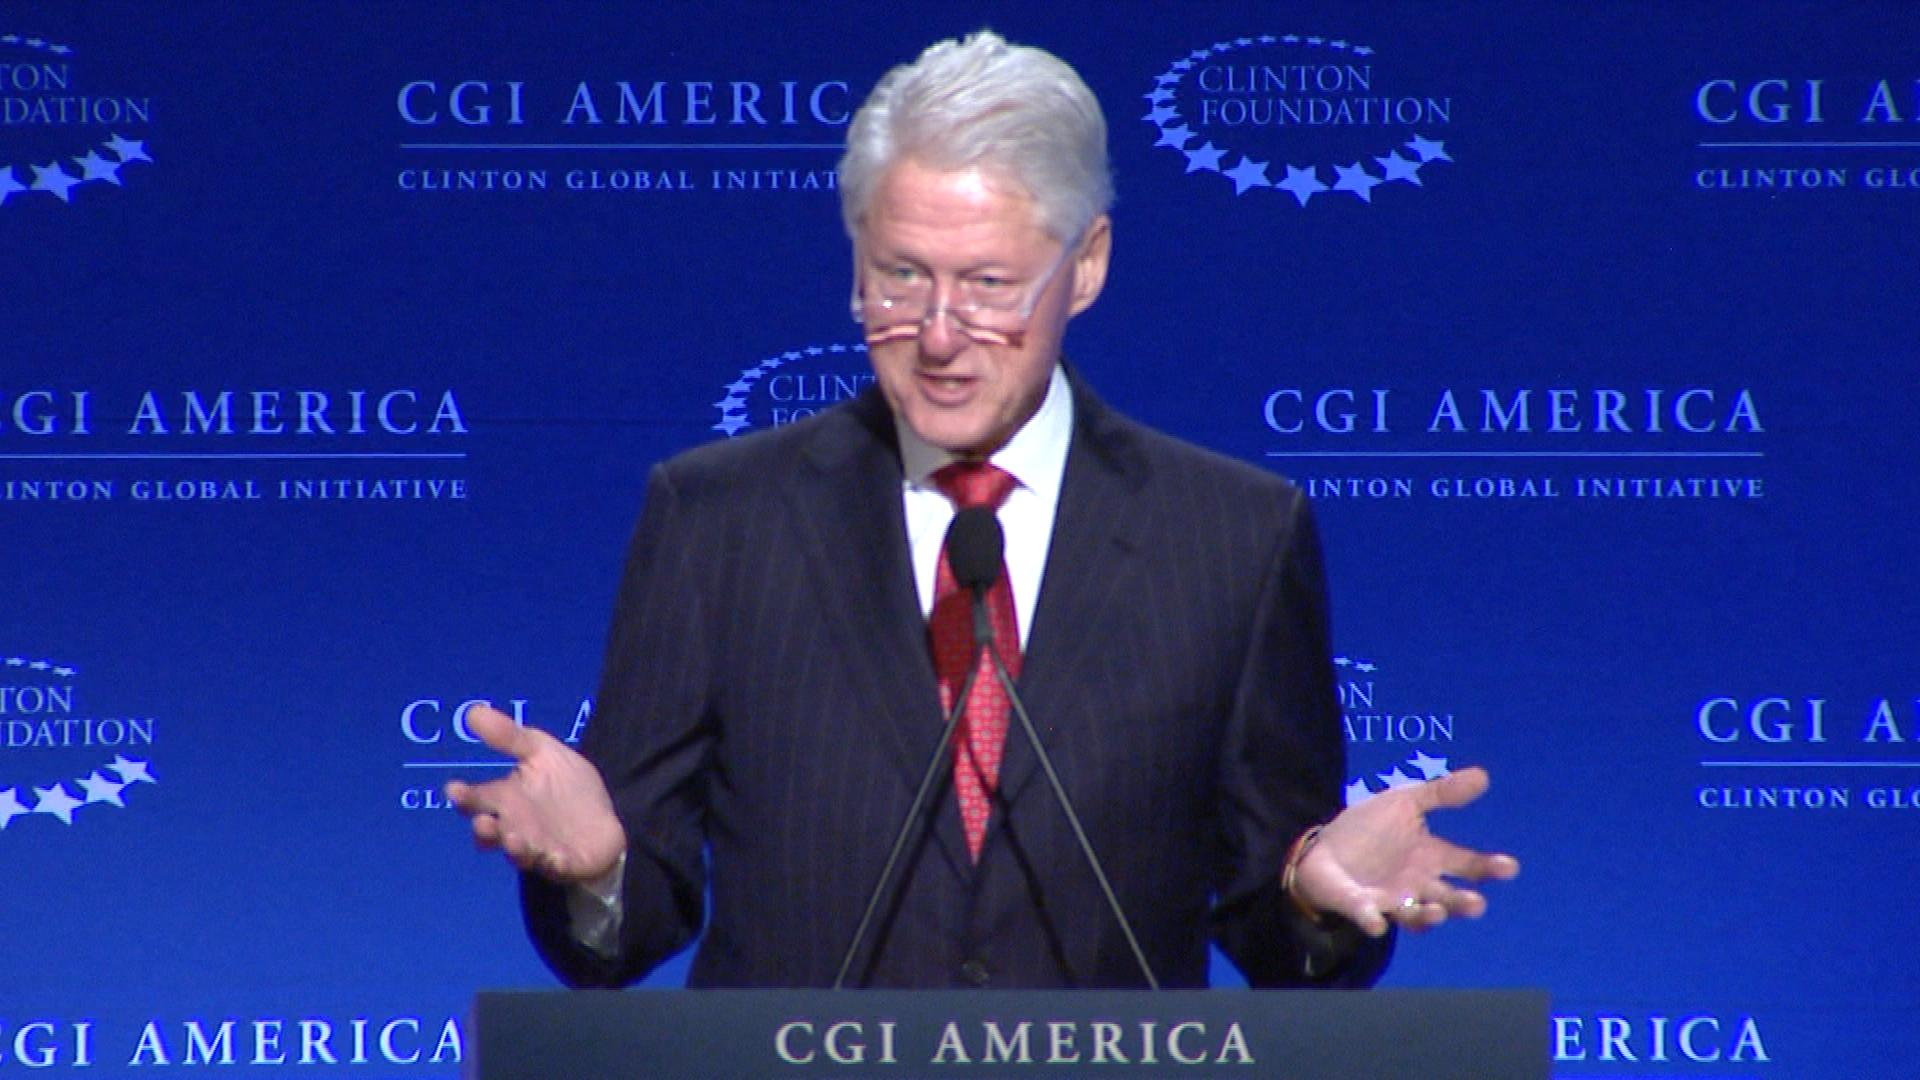 Bill Clinton in Denver on Tuesday (credit: CBS)